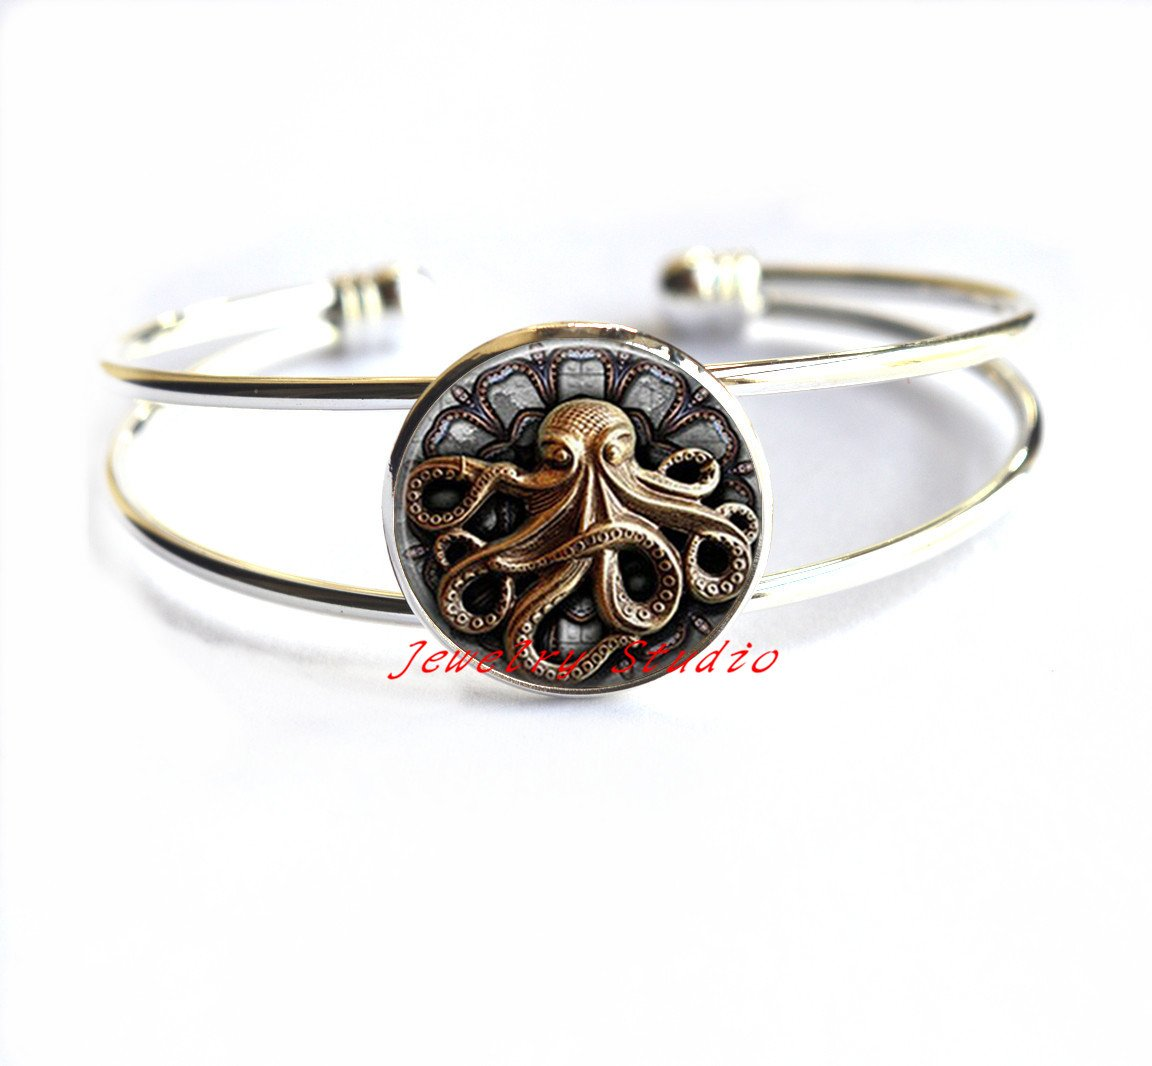 Steampunk Octopus Bracelet Bracelets Octopus Goth Jewelry Best Friends Bracelets,Octopus Bracelets Octopus jewelry Octopus Bracelet Fashion style Sea life jewelry-HZ00237 3